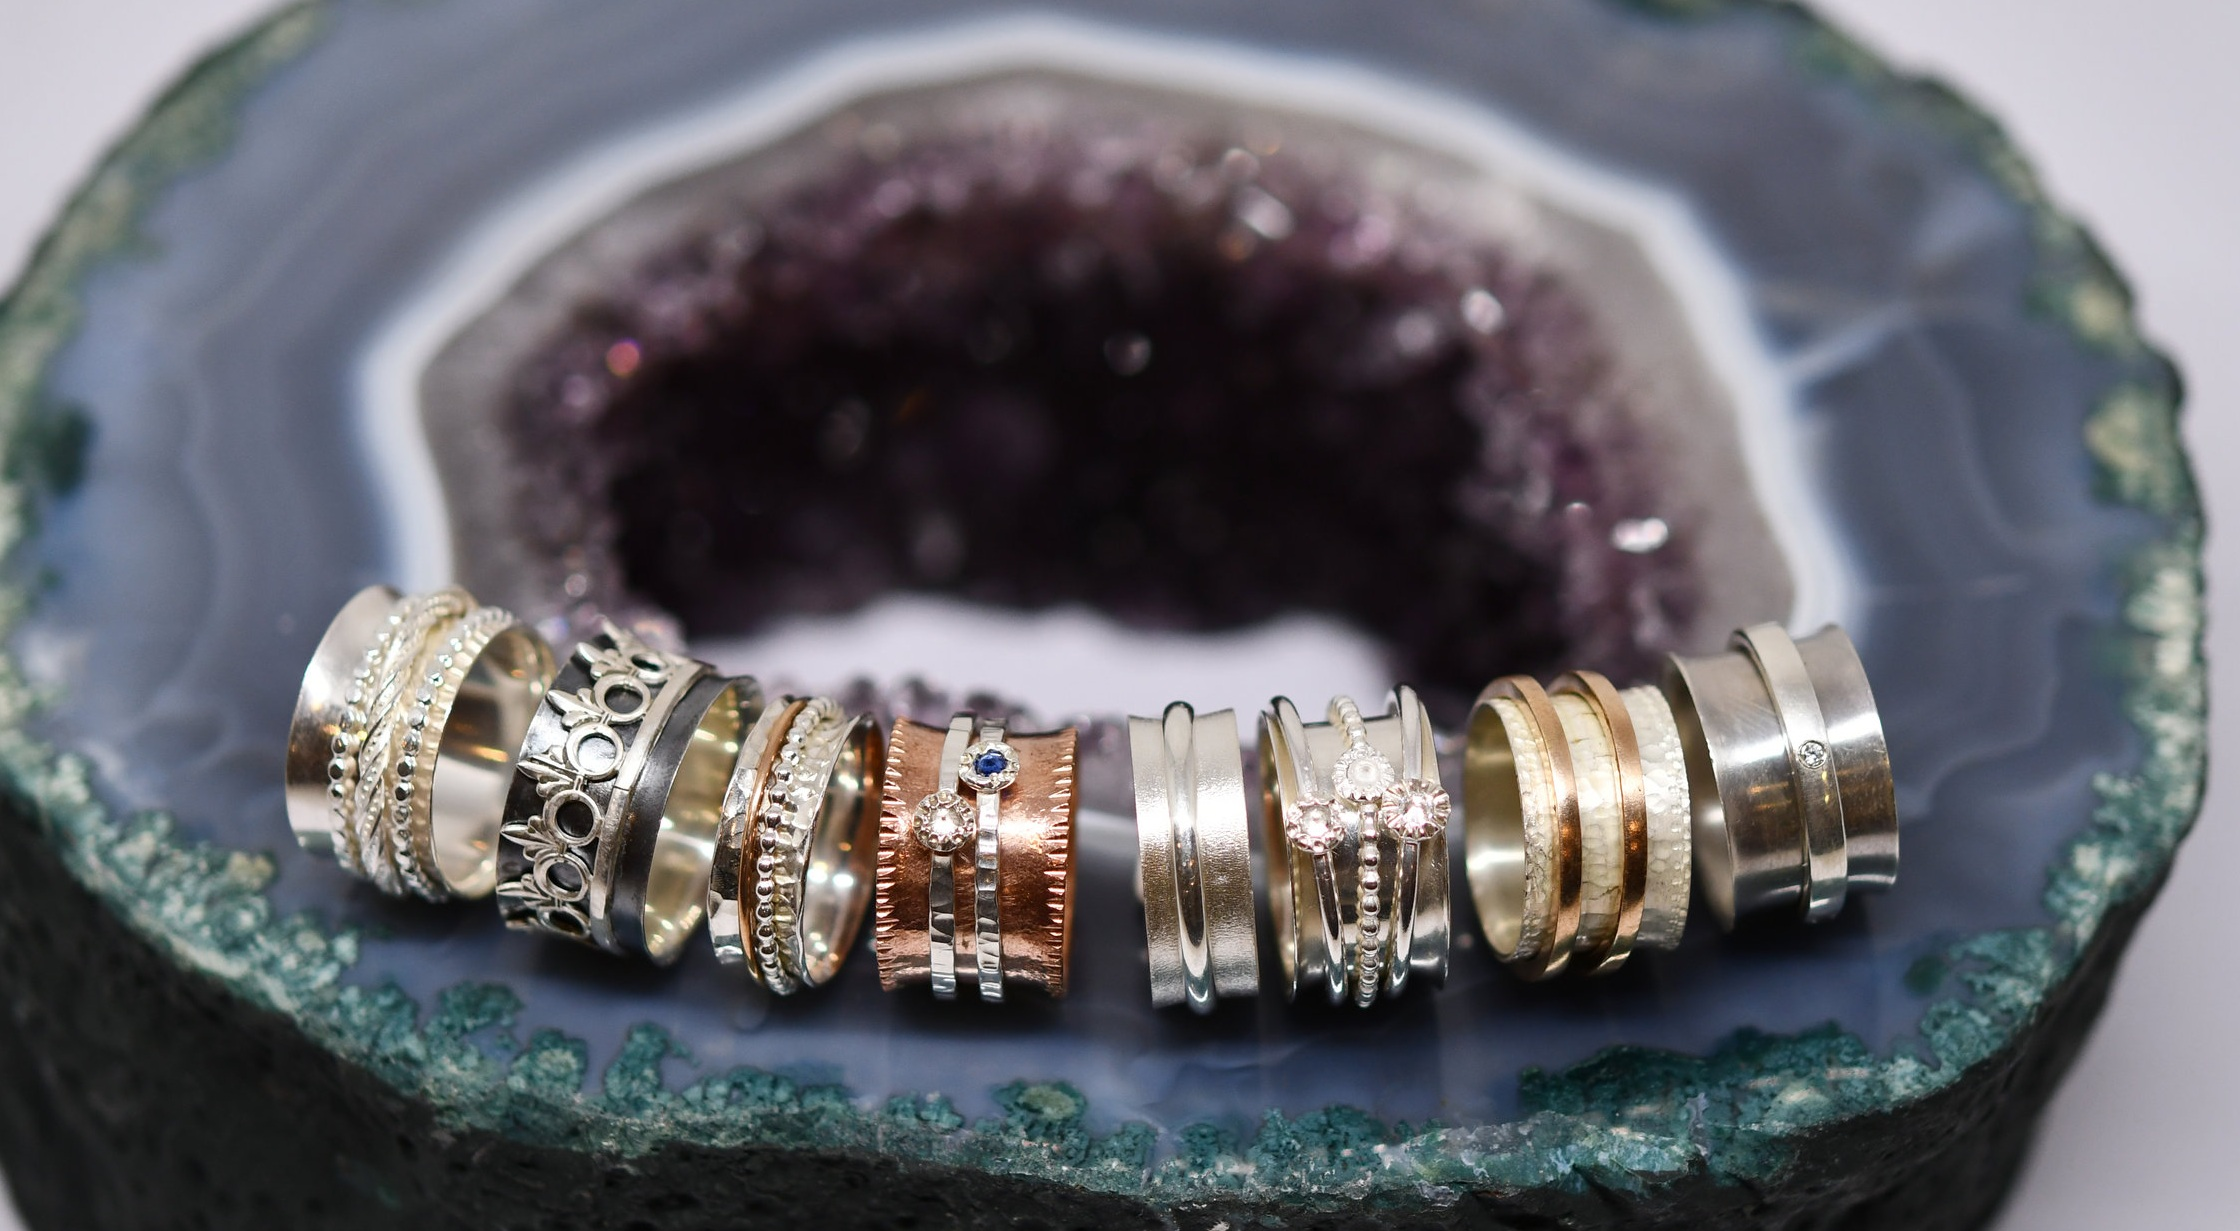 Student spinner ring samples from week 2